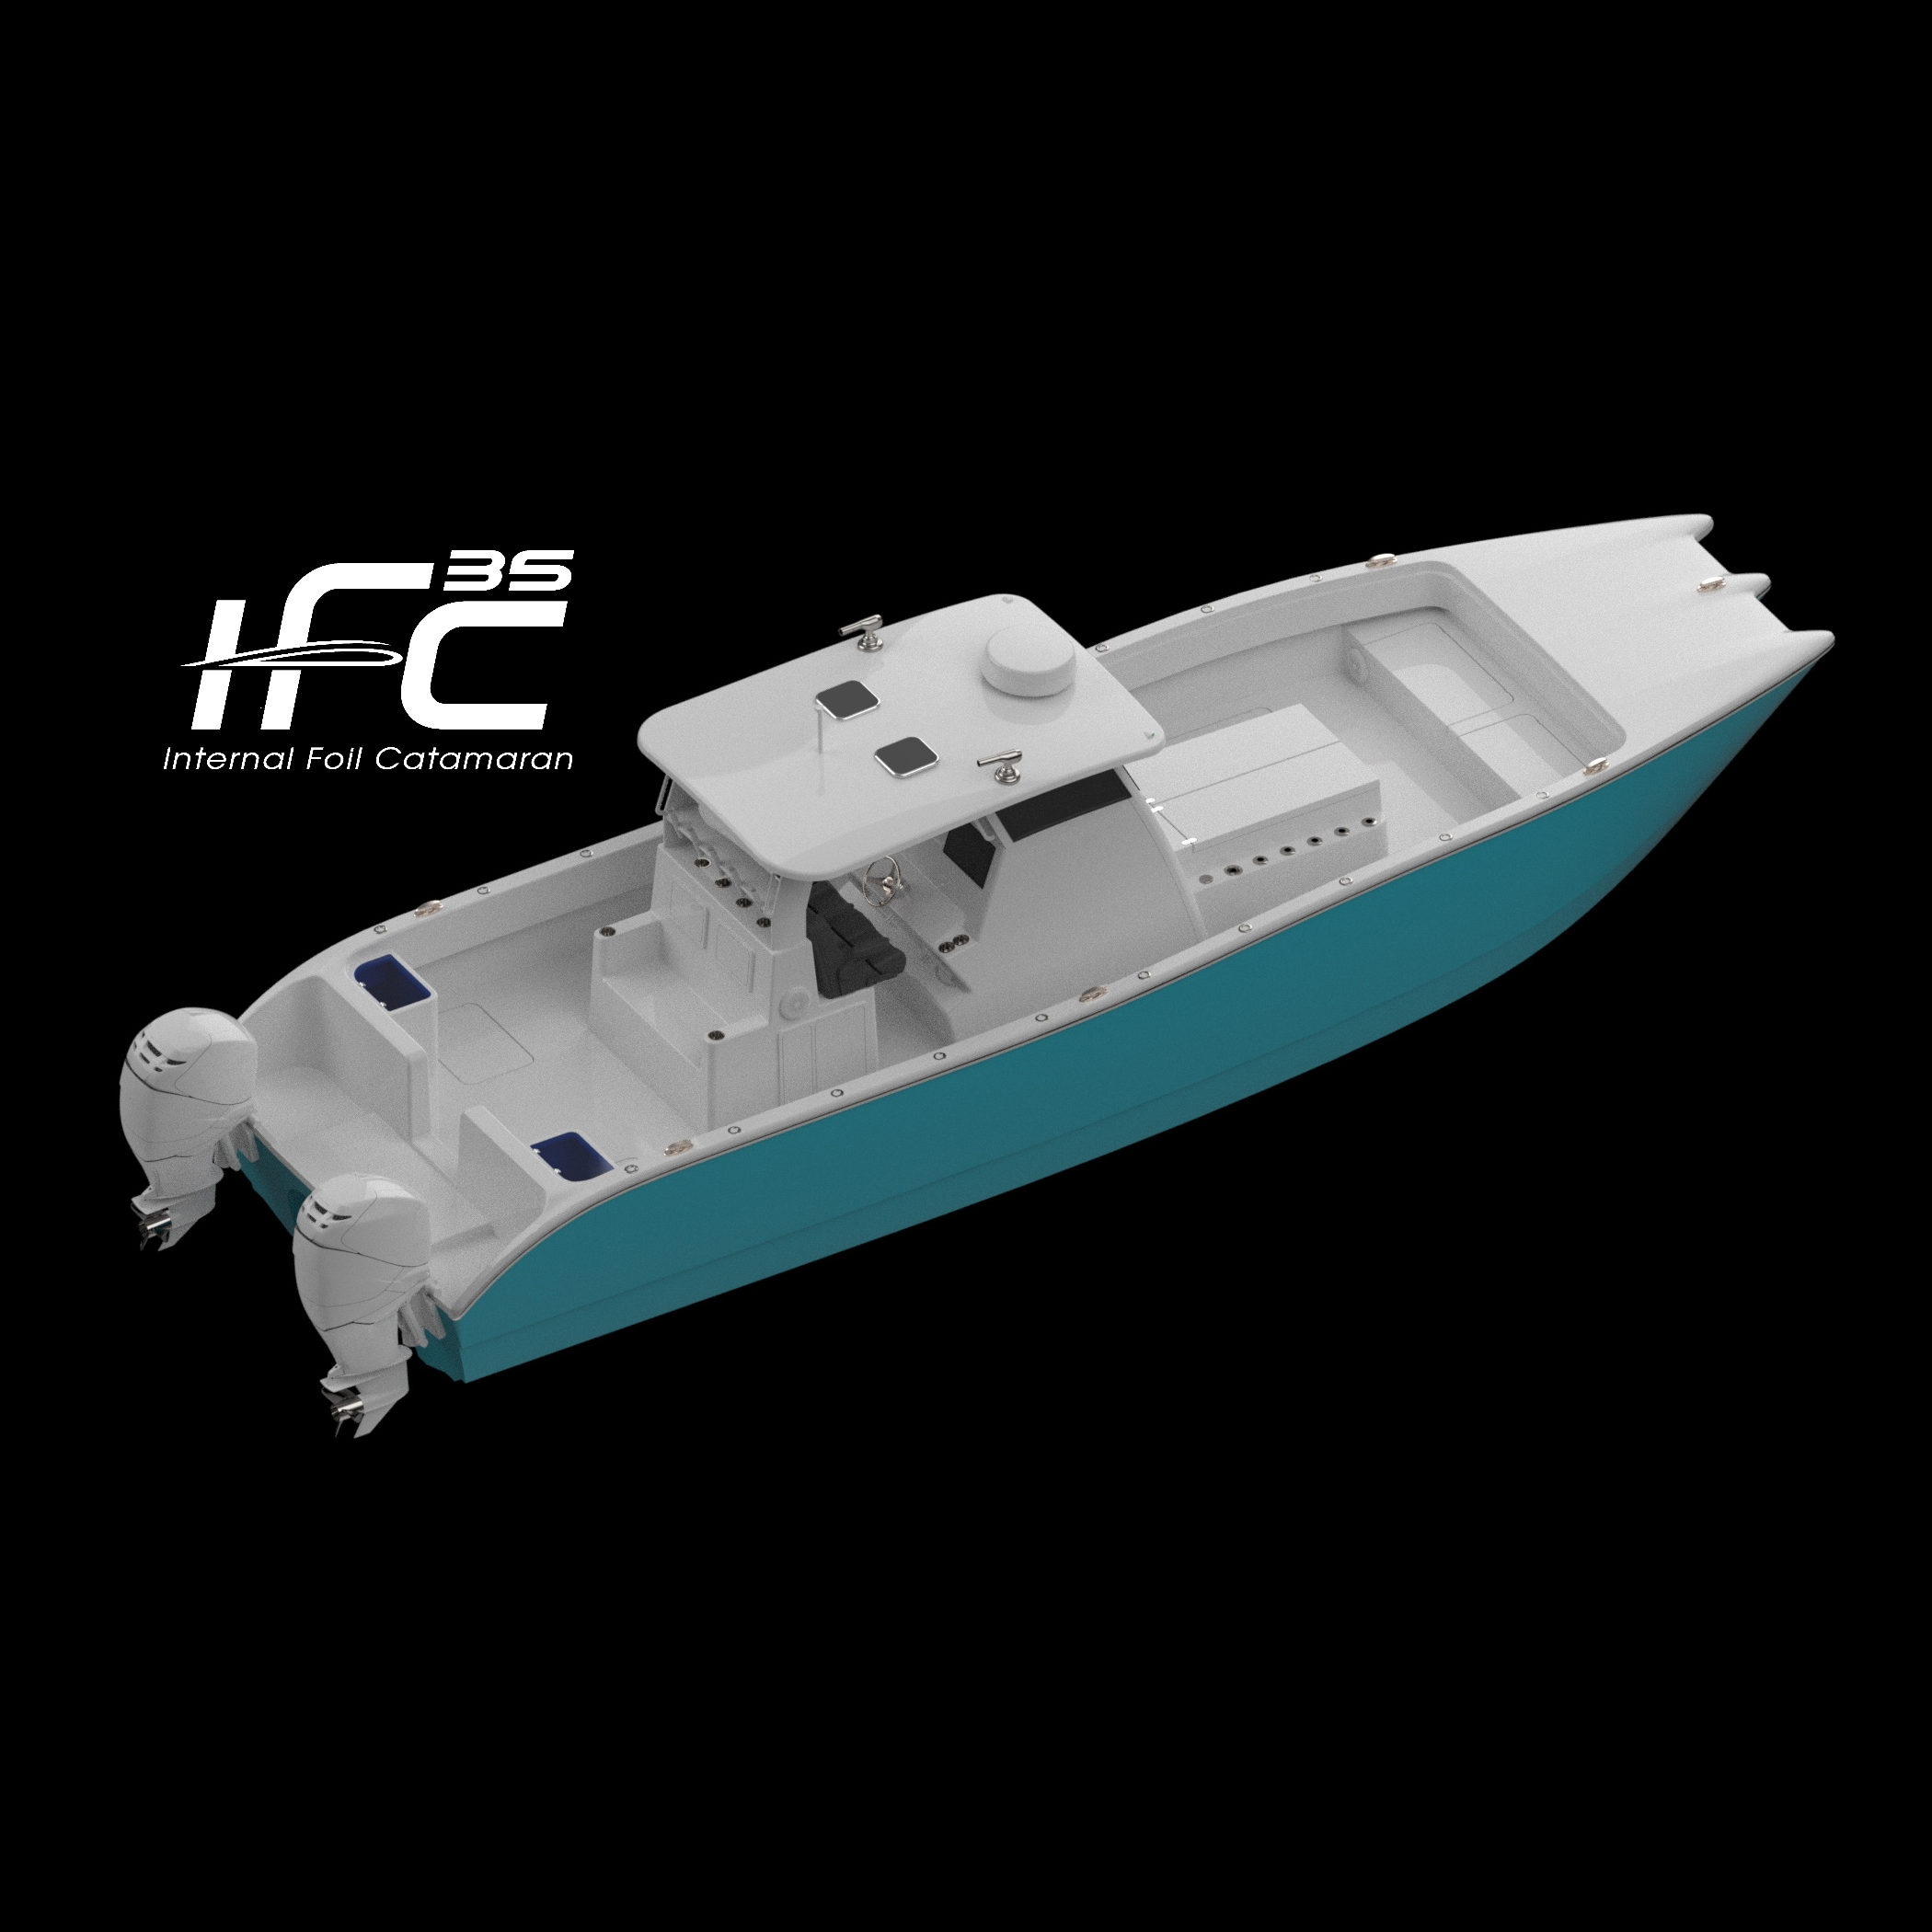 Shows the 35' Internal Foiling Catamaran by Insetta